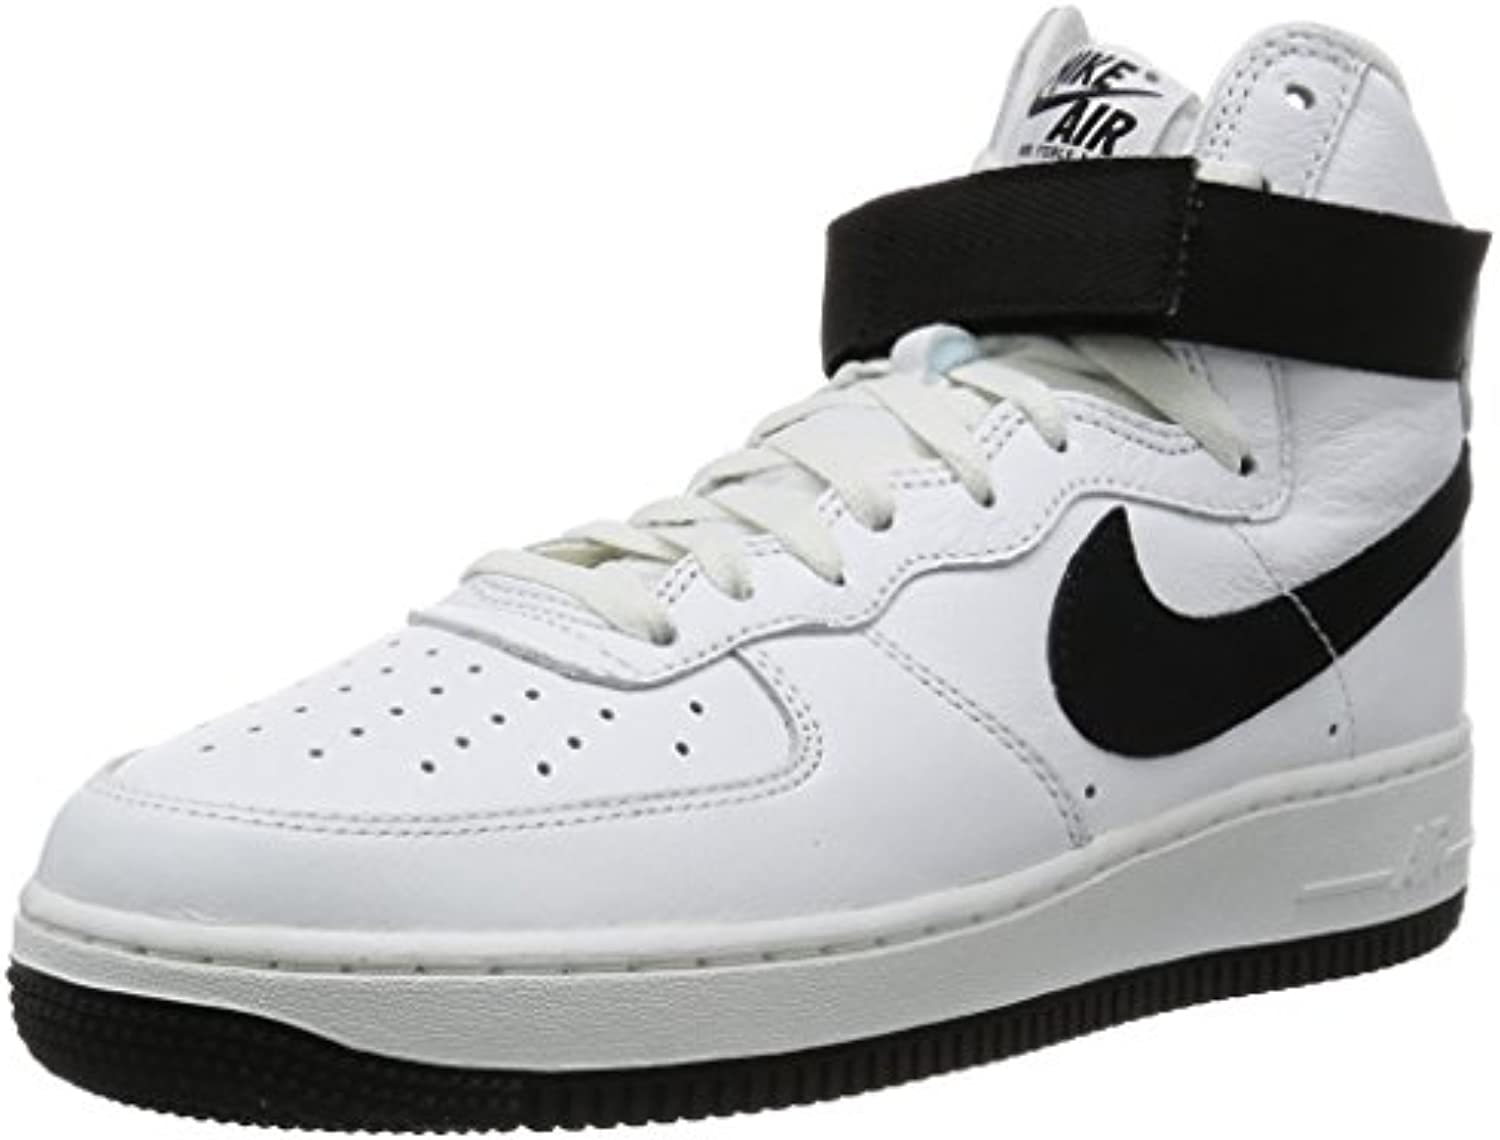 new products 20744 5c9ac nike hommes   eacute  s air air air force 1 chaussures rétro qs de handball